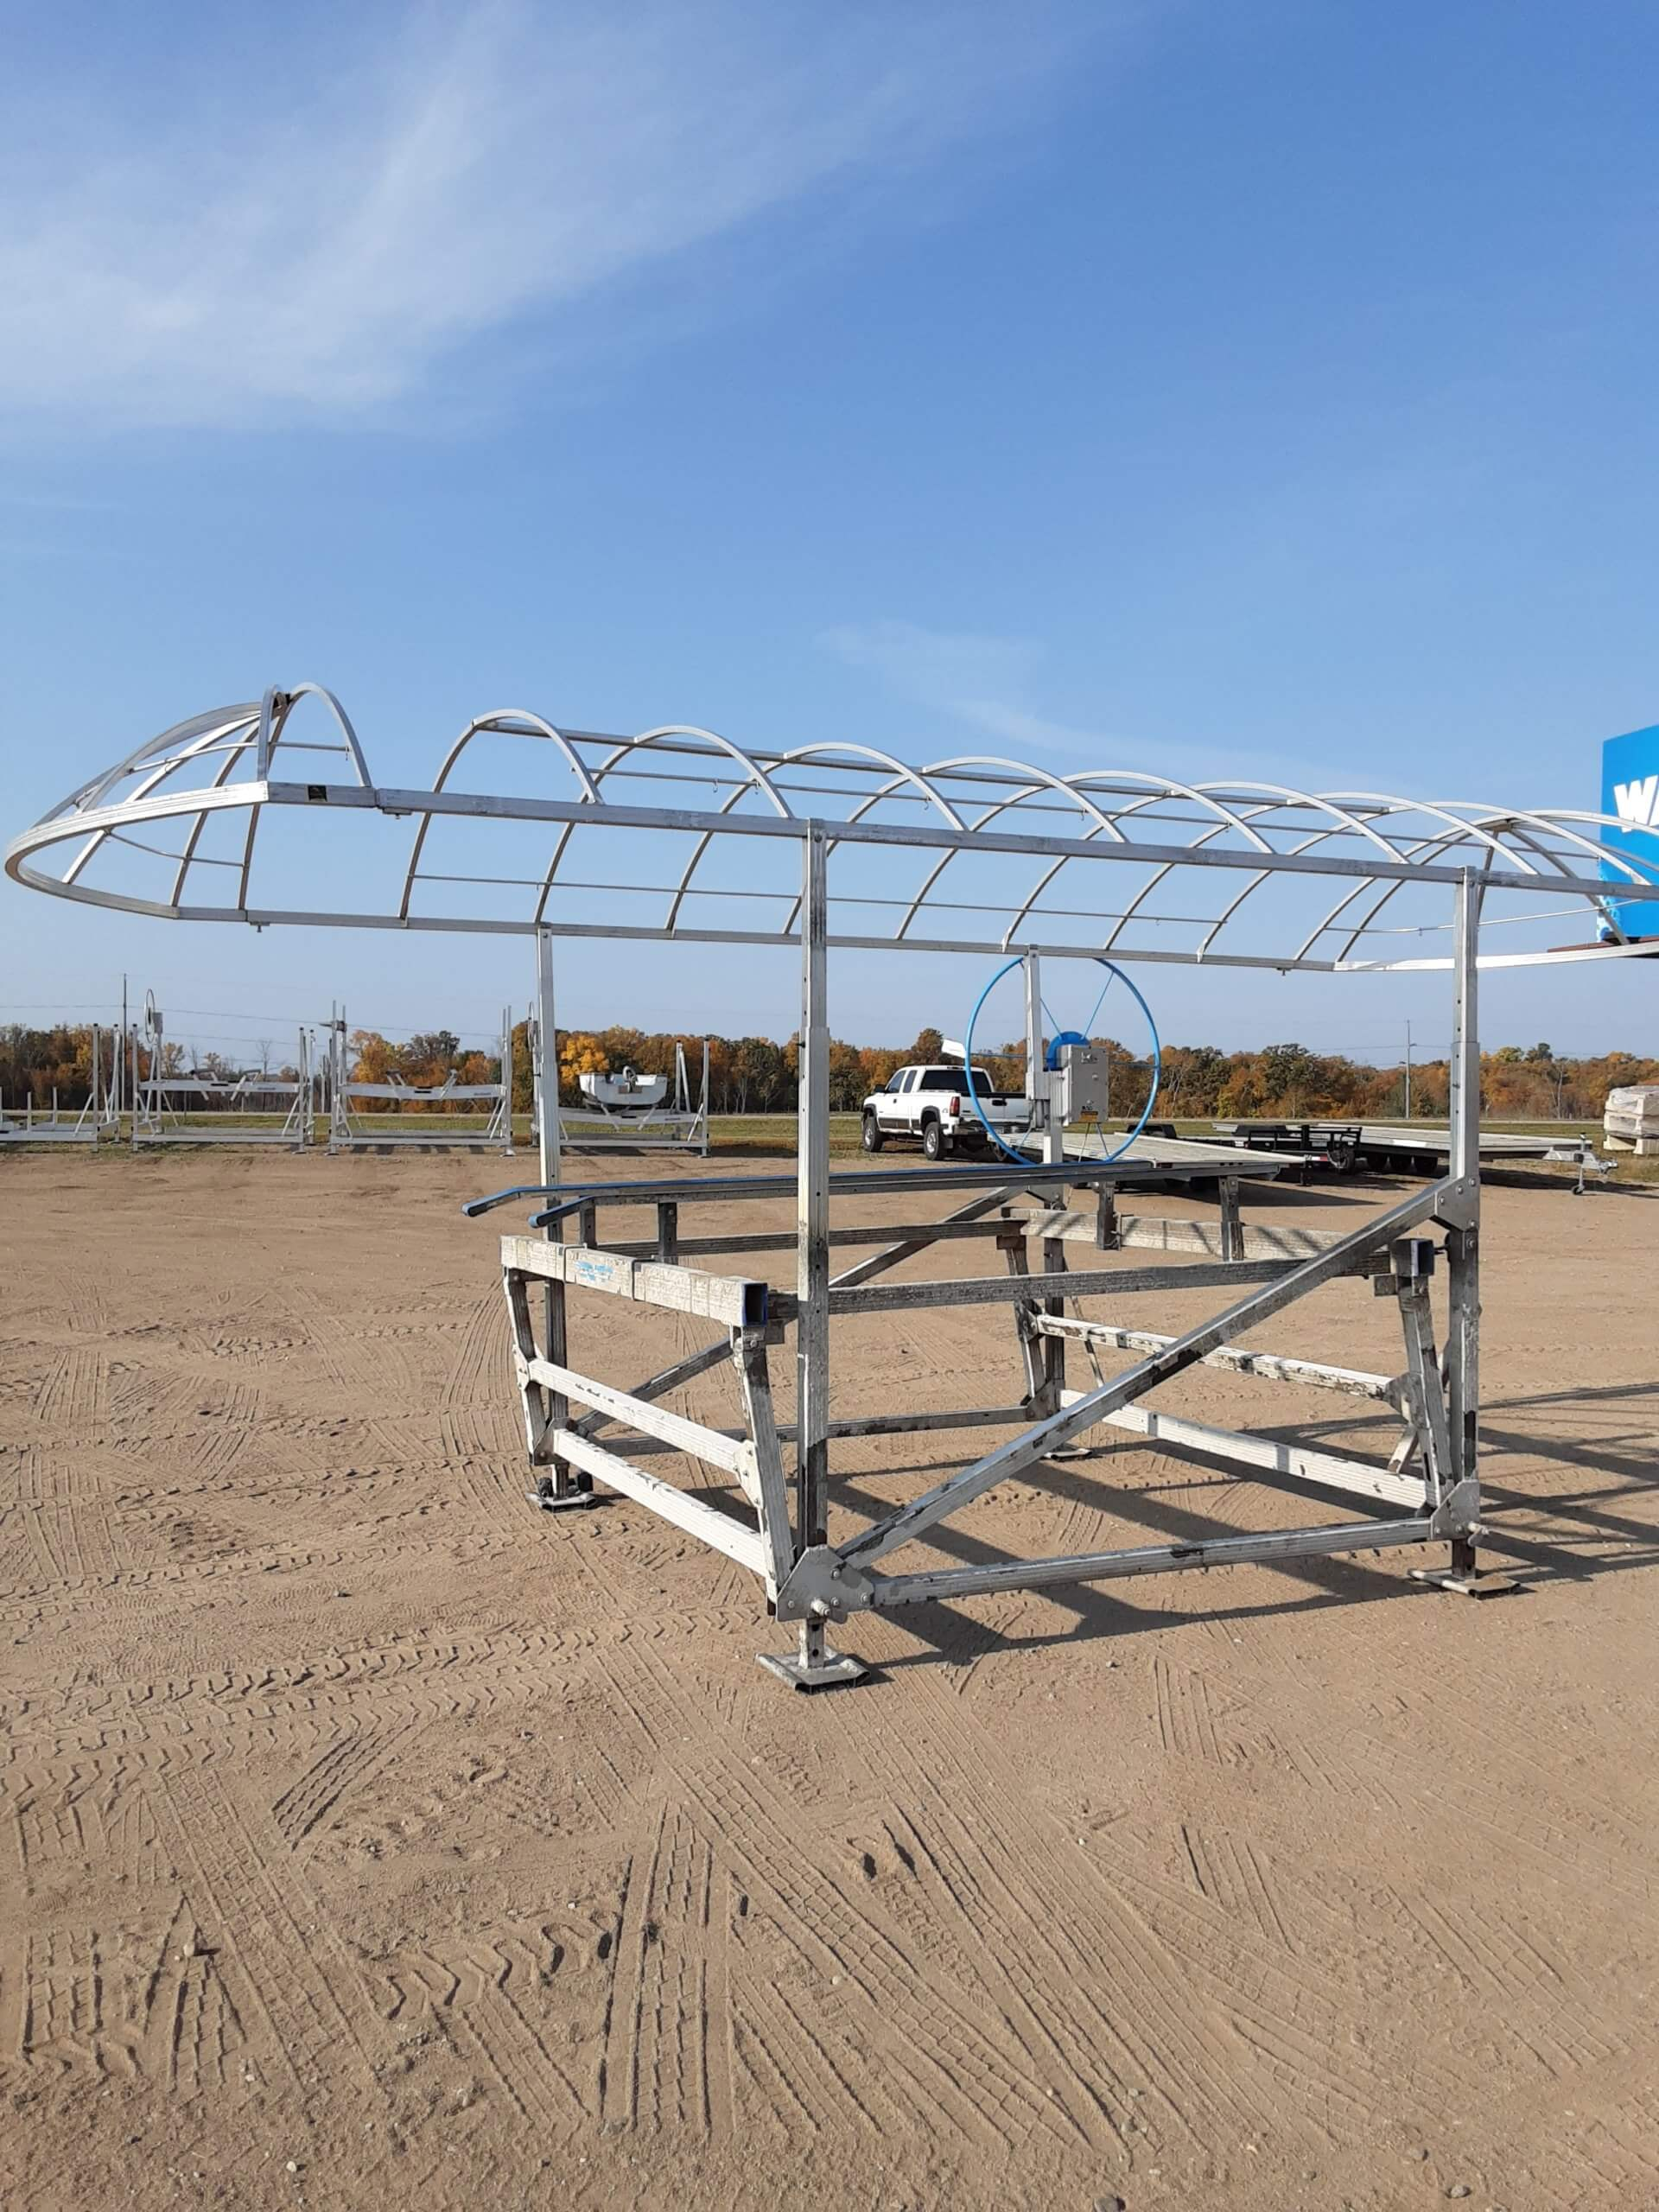 Stock # (2030) Newmans Boat Lift w/ 24′ Canopy – $3,495 (Sold)